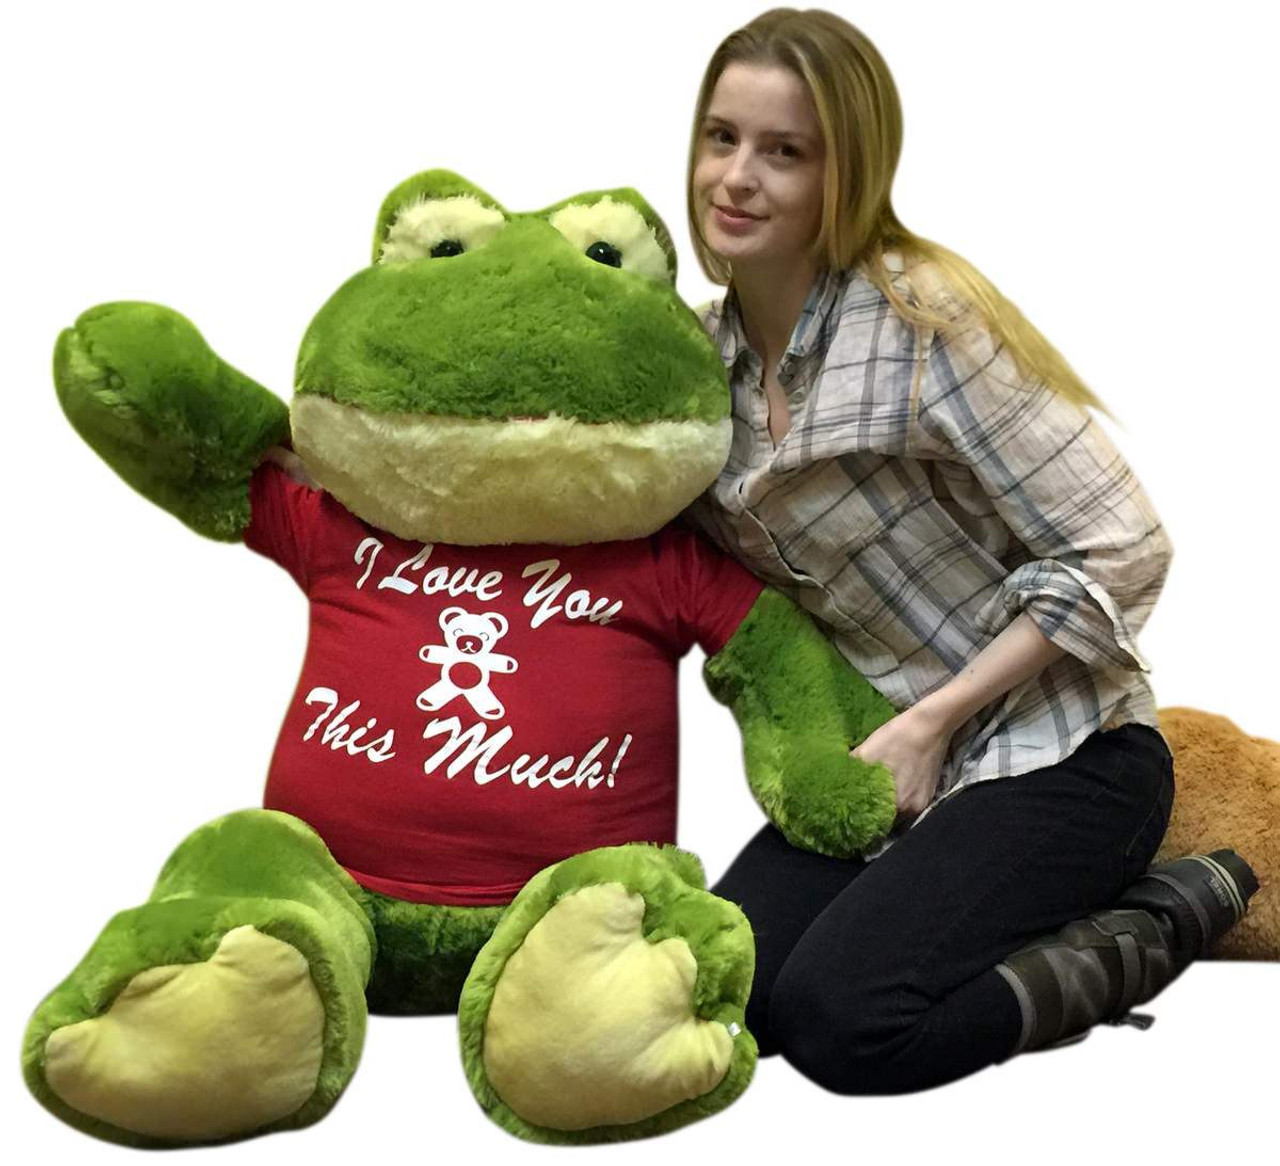 Giant Stuffed Frog Wears I Love You This Much Tshirt 48 Inch Soft